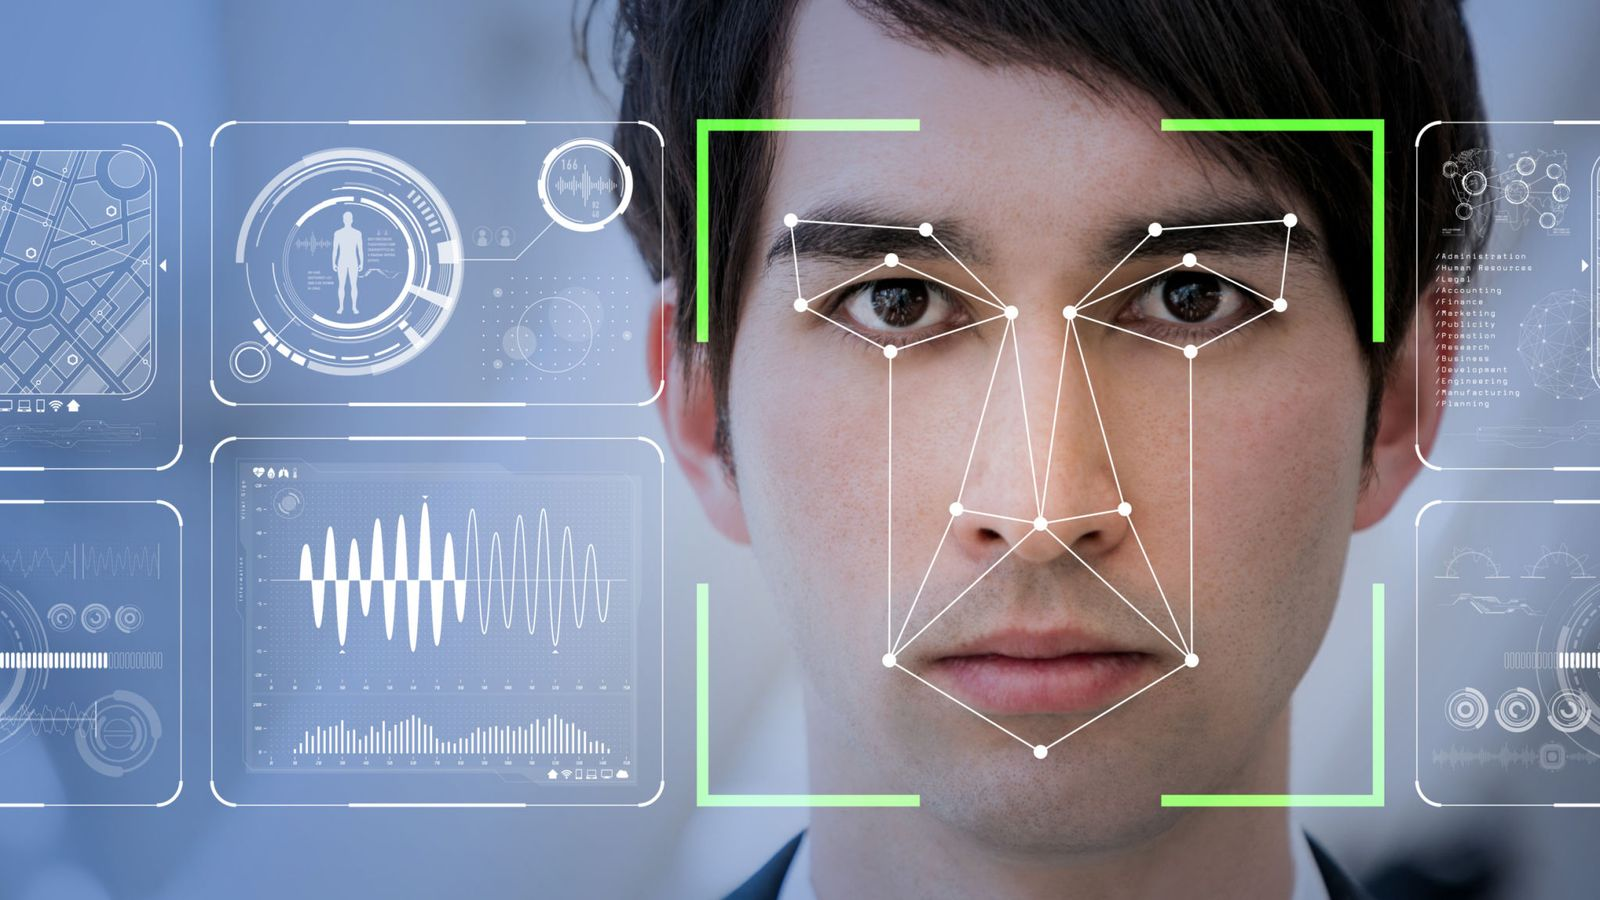 China: Facial recognition targets GP appointment touts